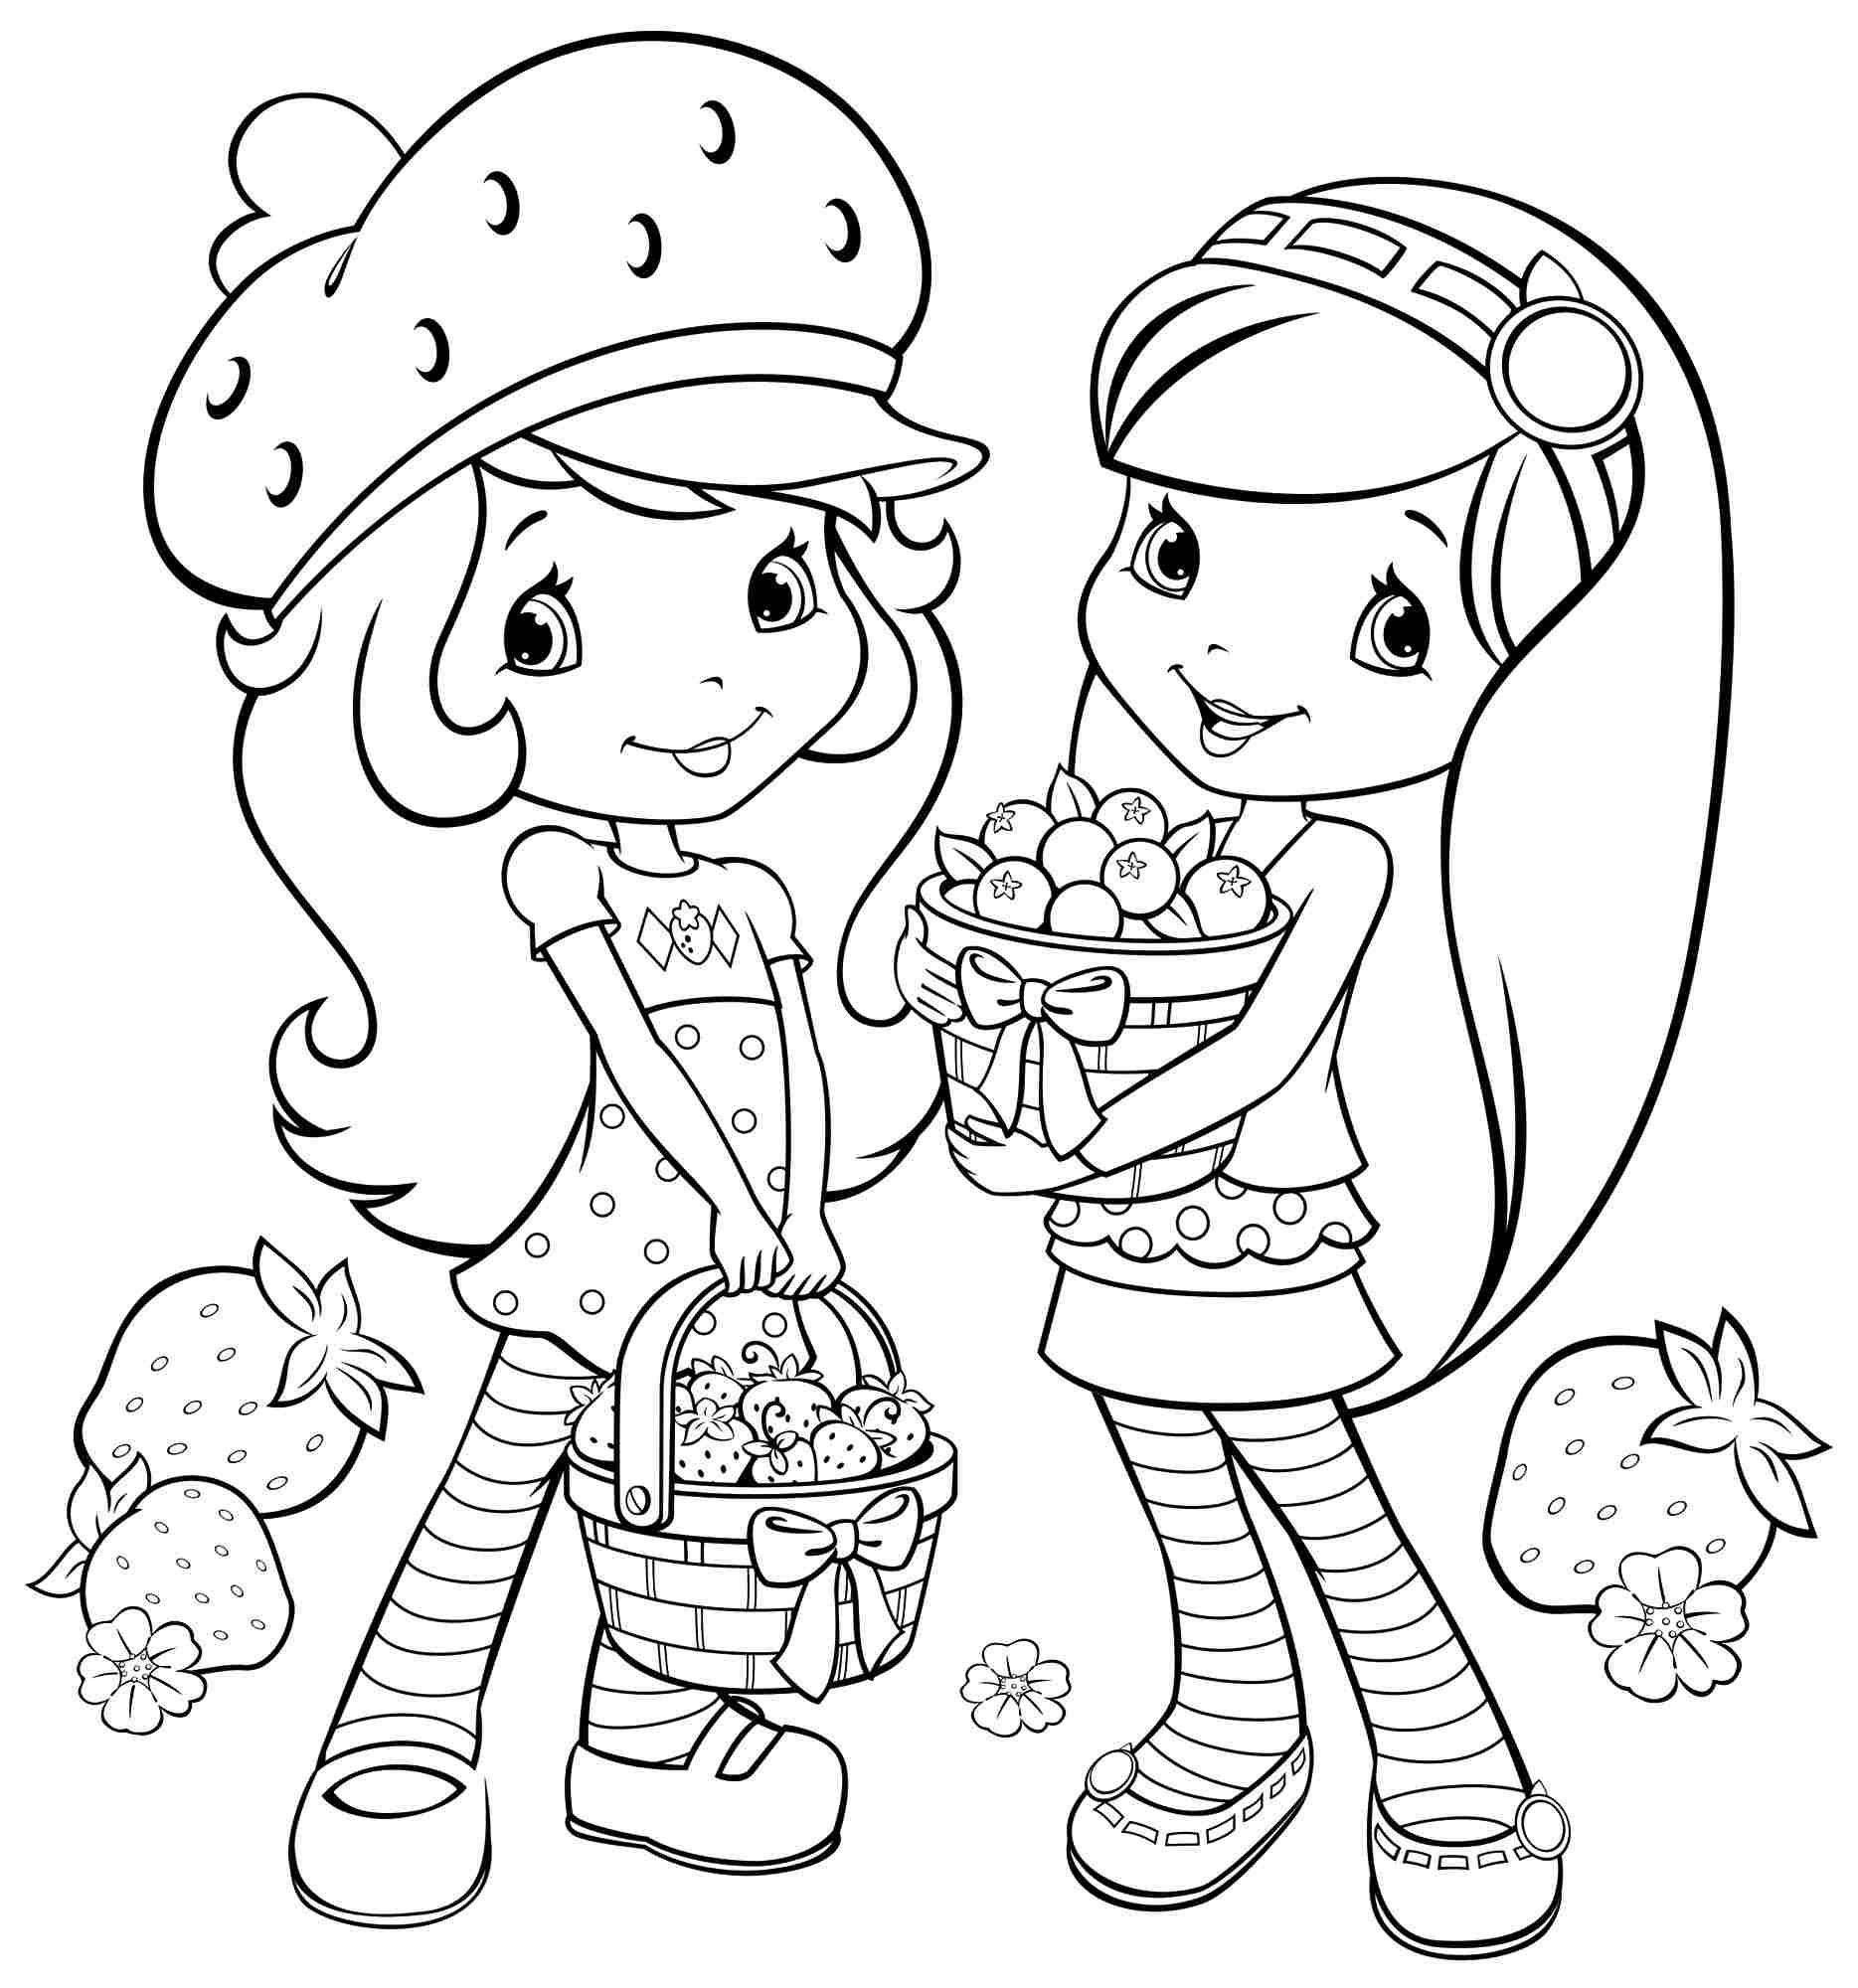 Luxury Lego Friends Coloring Book